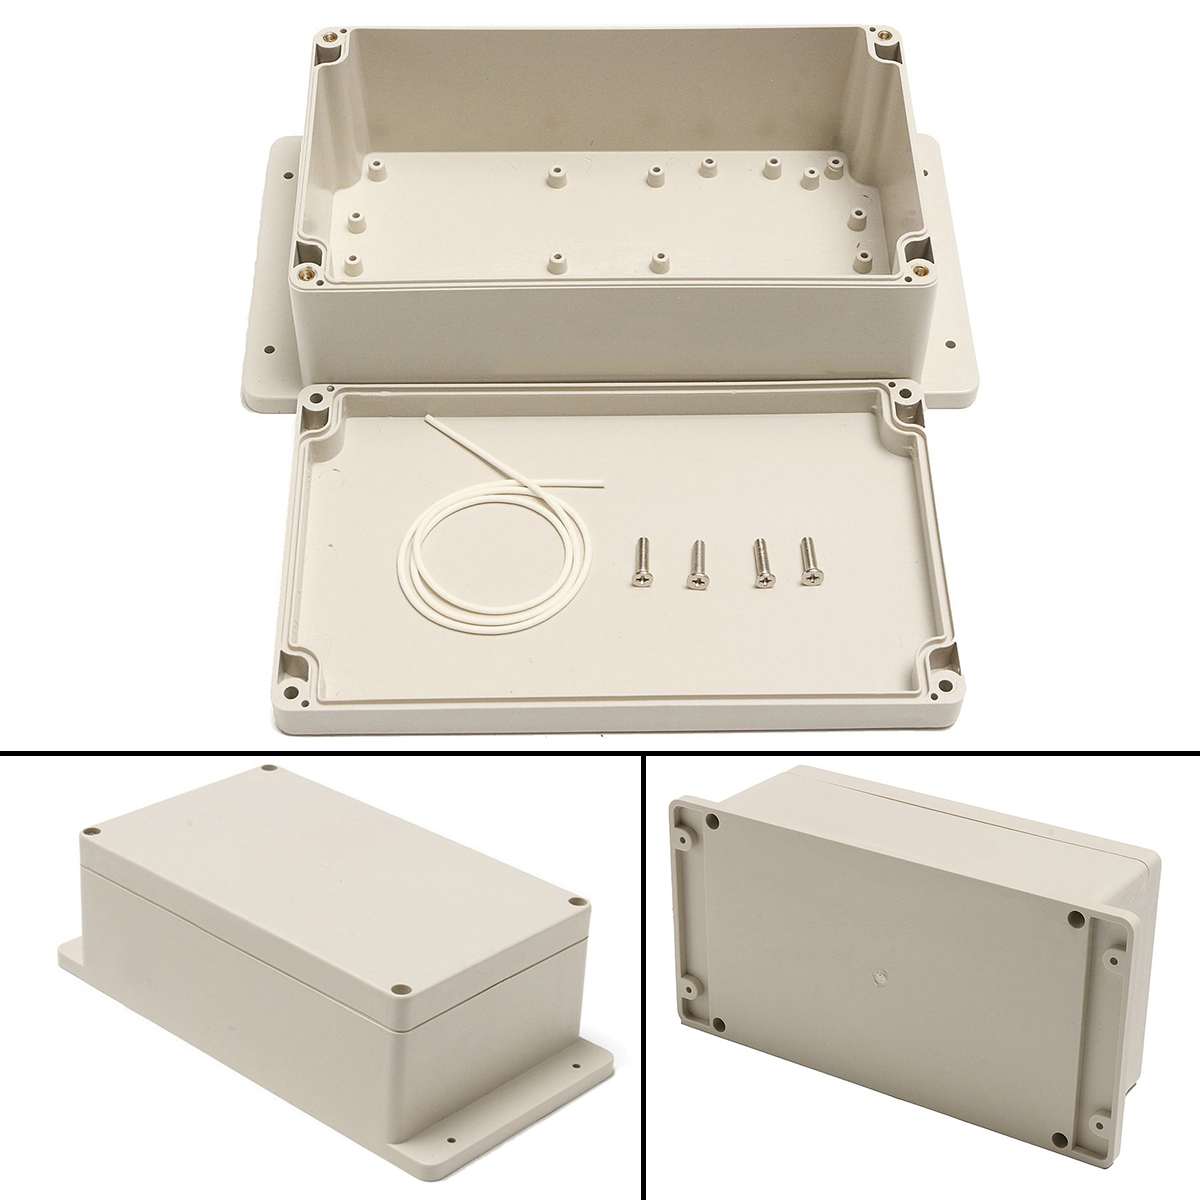 1pc Waterproof Enclosure Box Plastic Electronic Project Instrument Case 200x120x75mm 4pcs a lot diy plastic enclosure for electronic handheld led junction box abs housing control box waterproof case 238 134 50mm